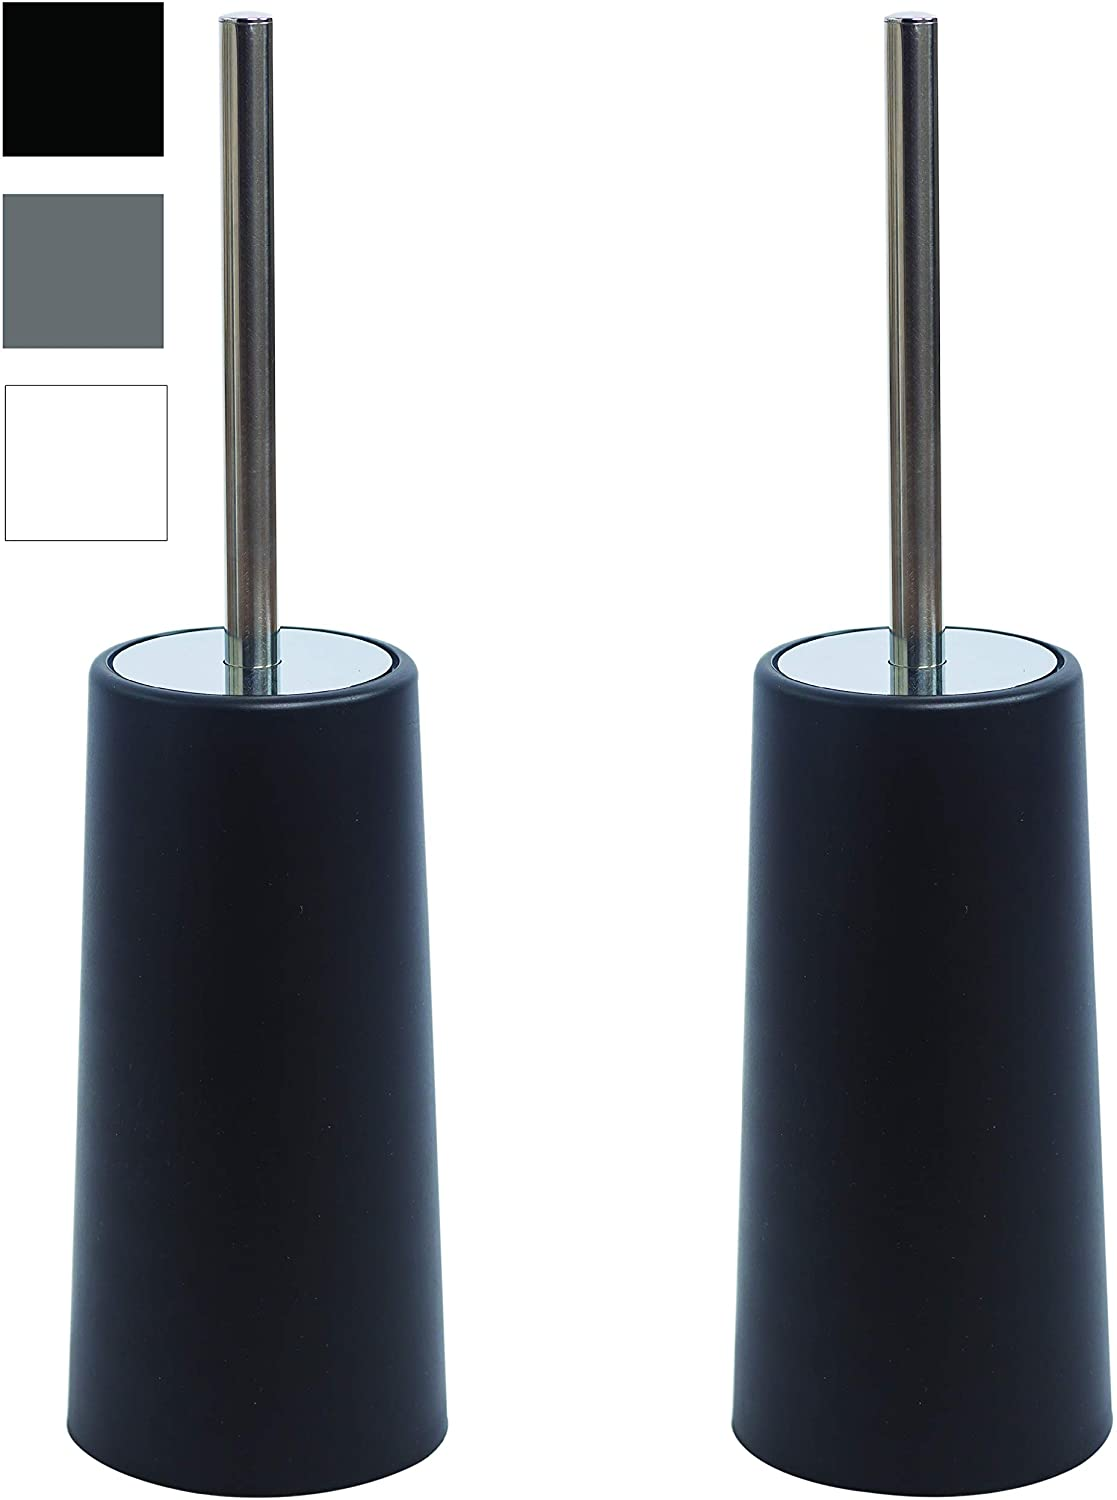 AIREE FAIREE Toilet Brush and Holder Brushes Set Stainless Steel 2 Pack Free Standing Compact Modern Design Long Handle (Black)